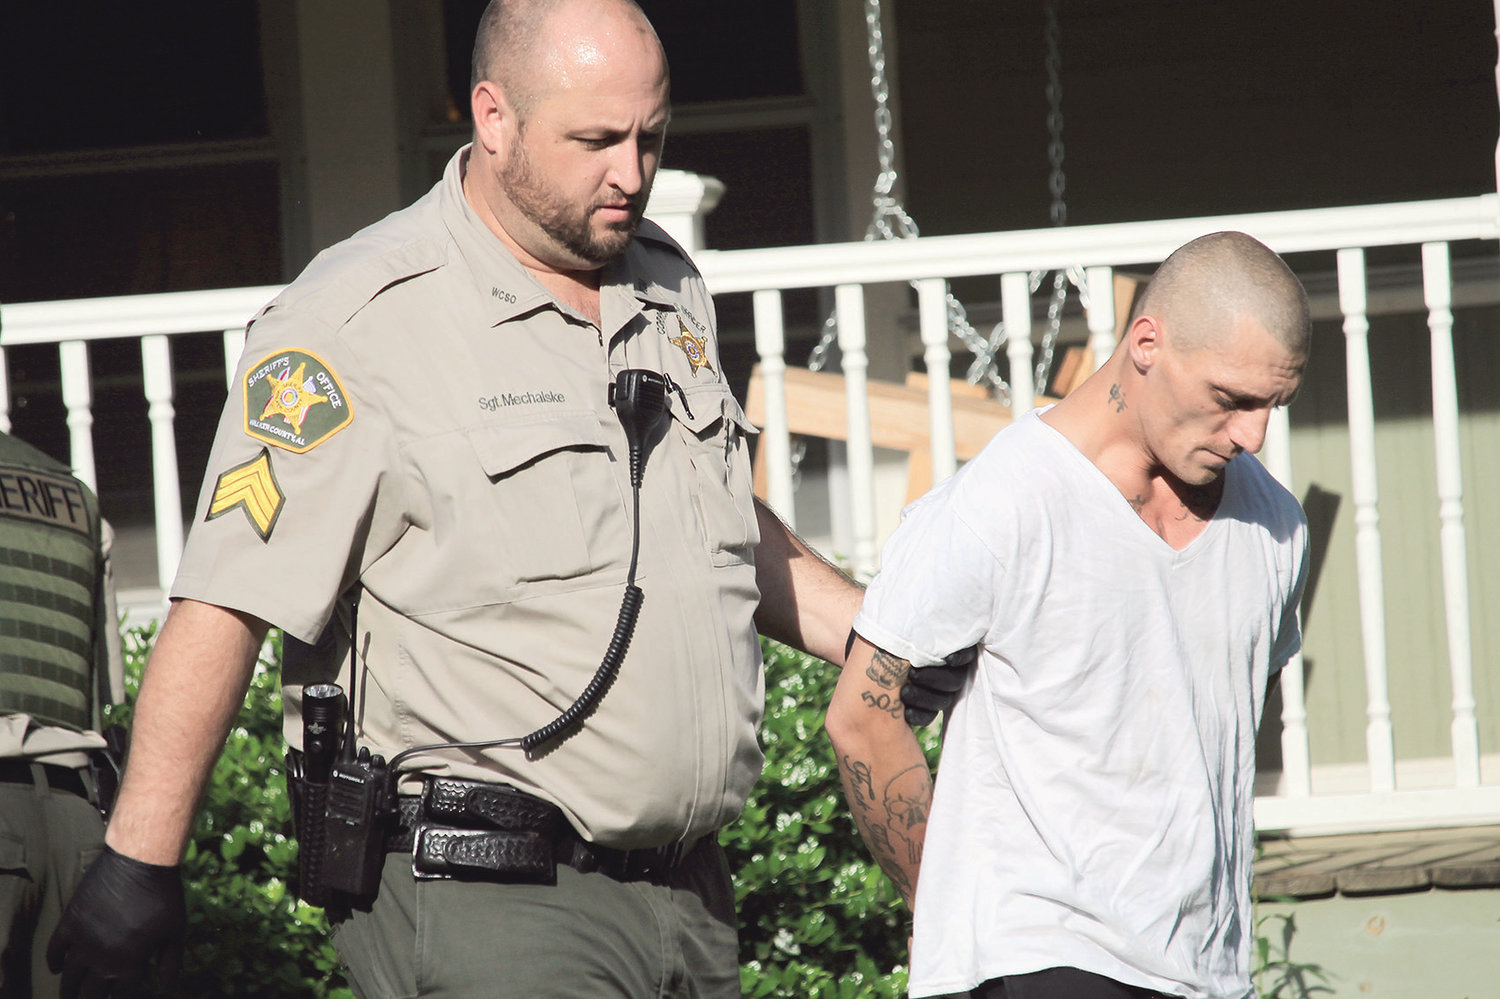 Jason Mechalske escorts Woody Frost to the van that will transport him to Walker County Jail on Wednesday.